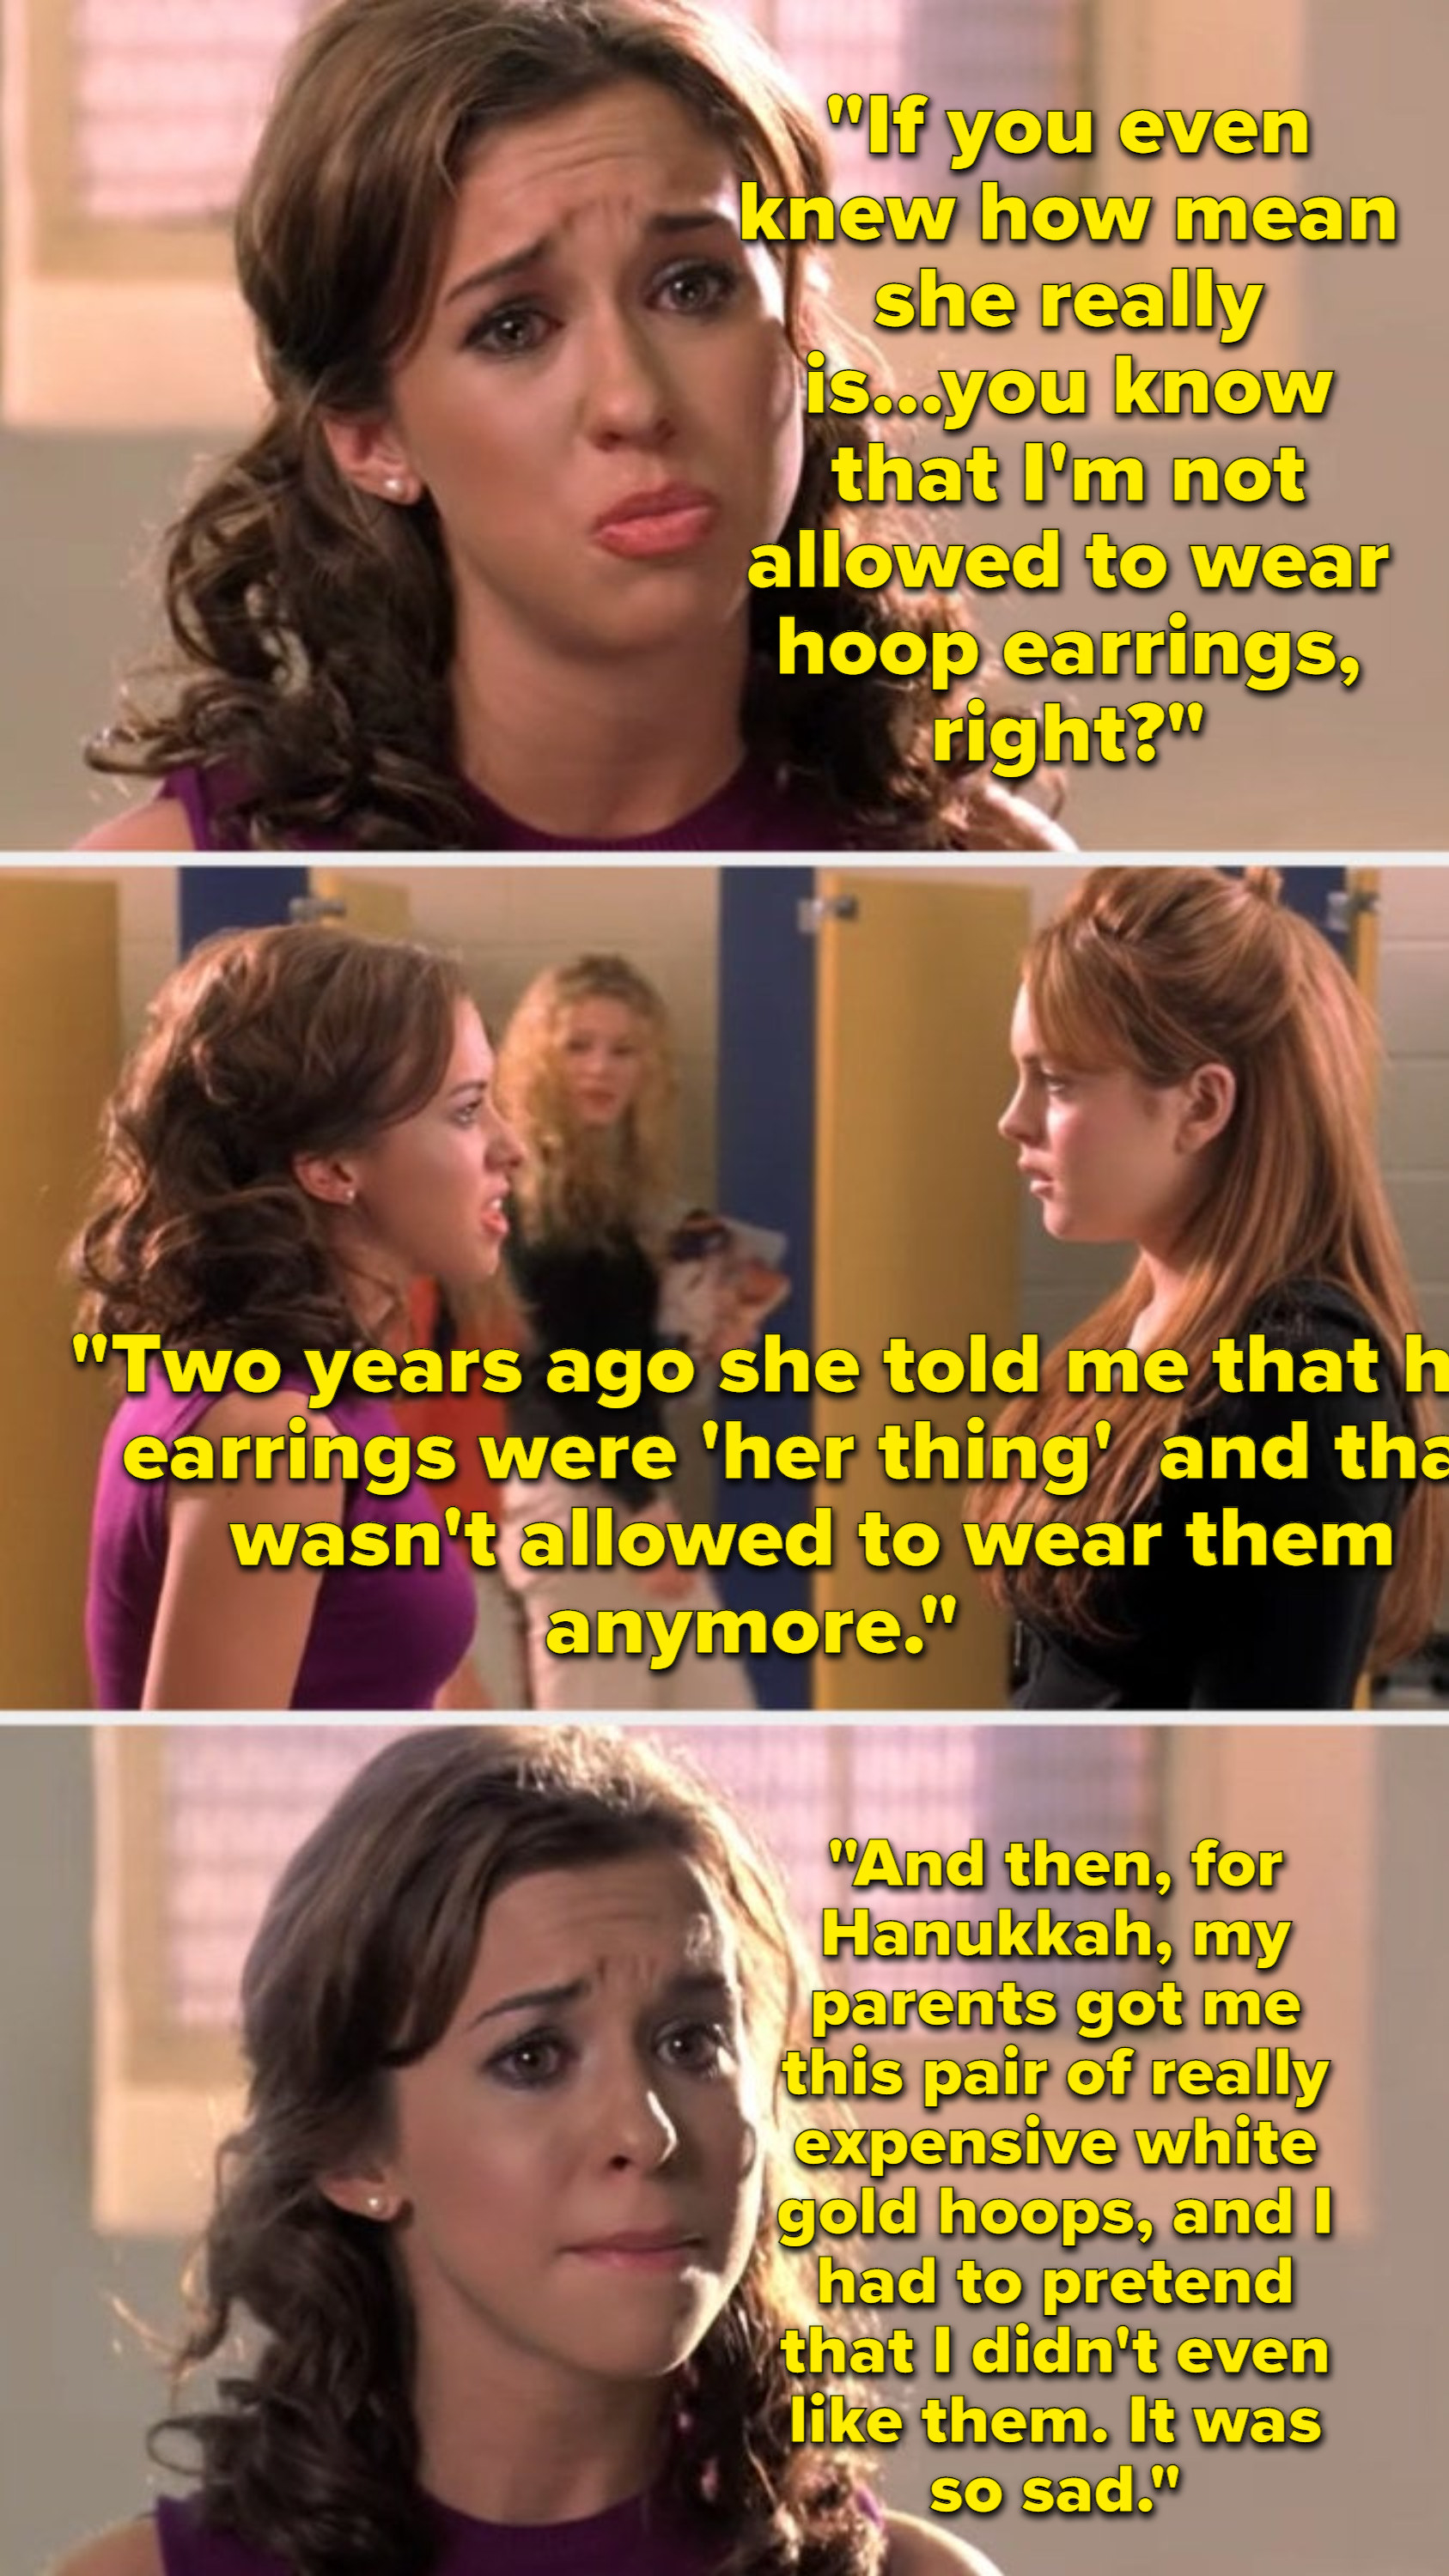 Gretchen describing how Regina told her she wasn't allowed to wear hoop earrings anymore, and she had to pretend to not like a pair her parents got her as a gift